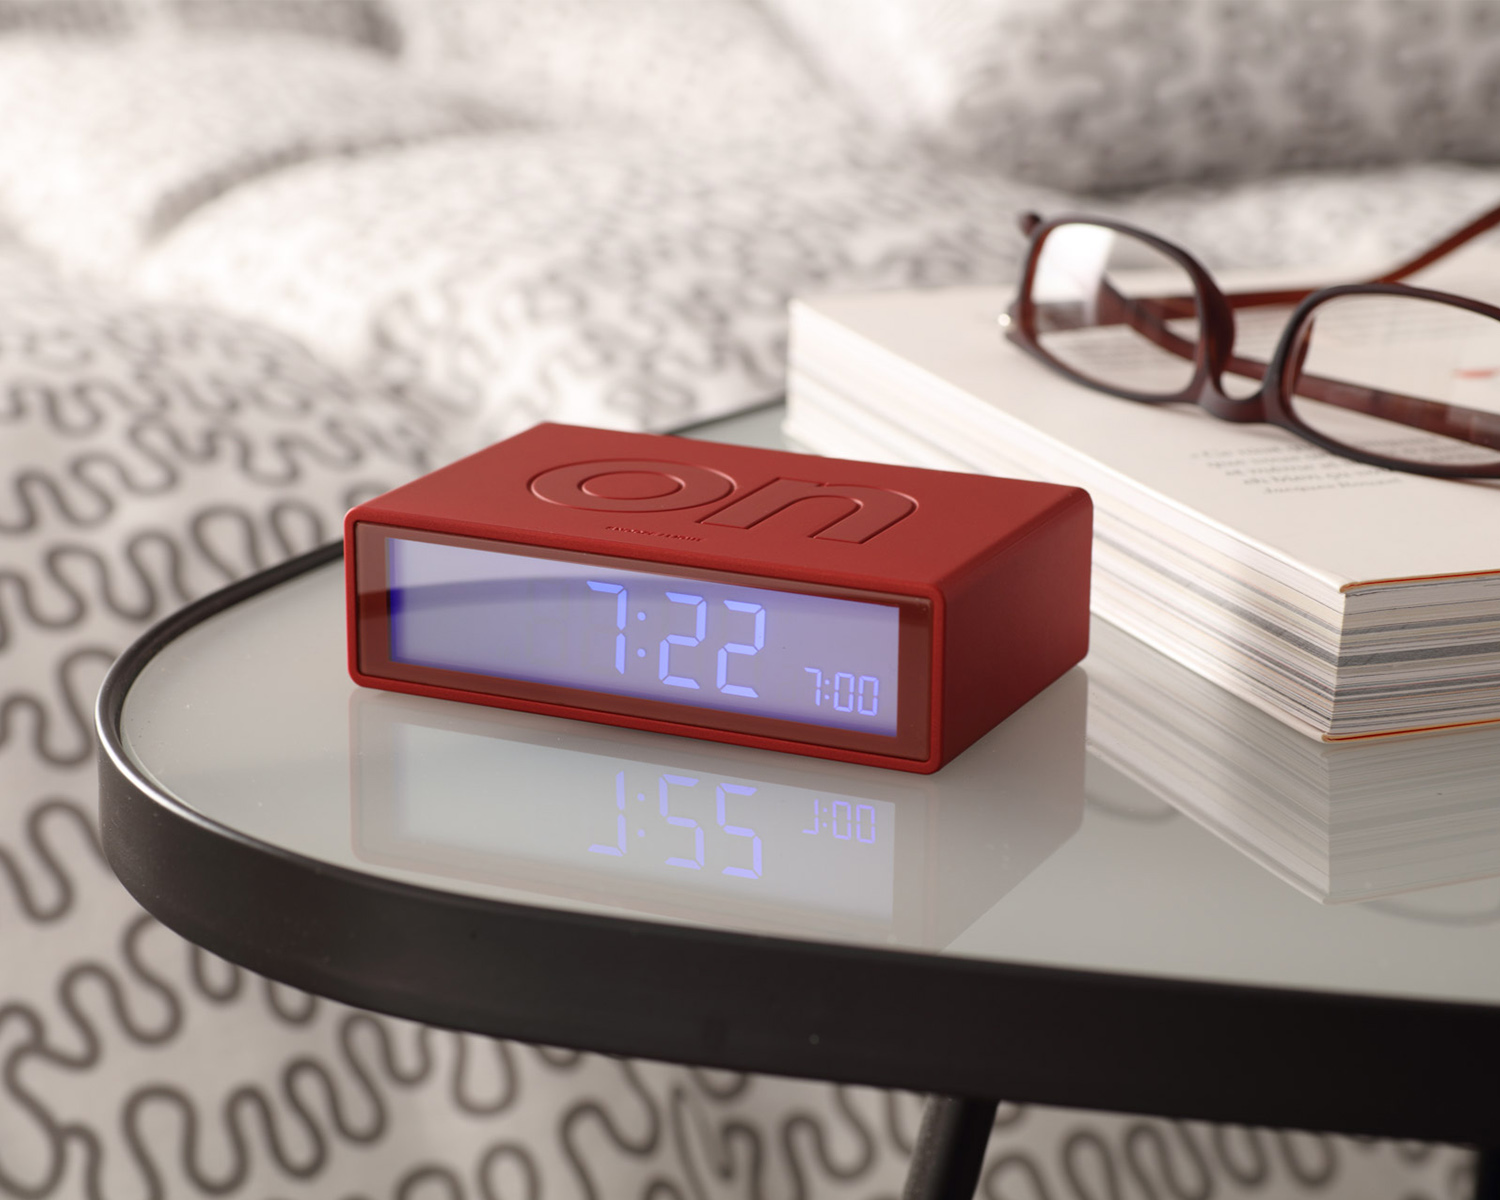 metallic-red-lexon-flip-alarm-clock-111